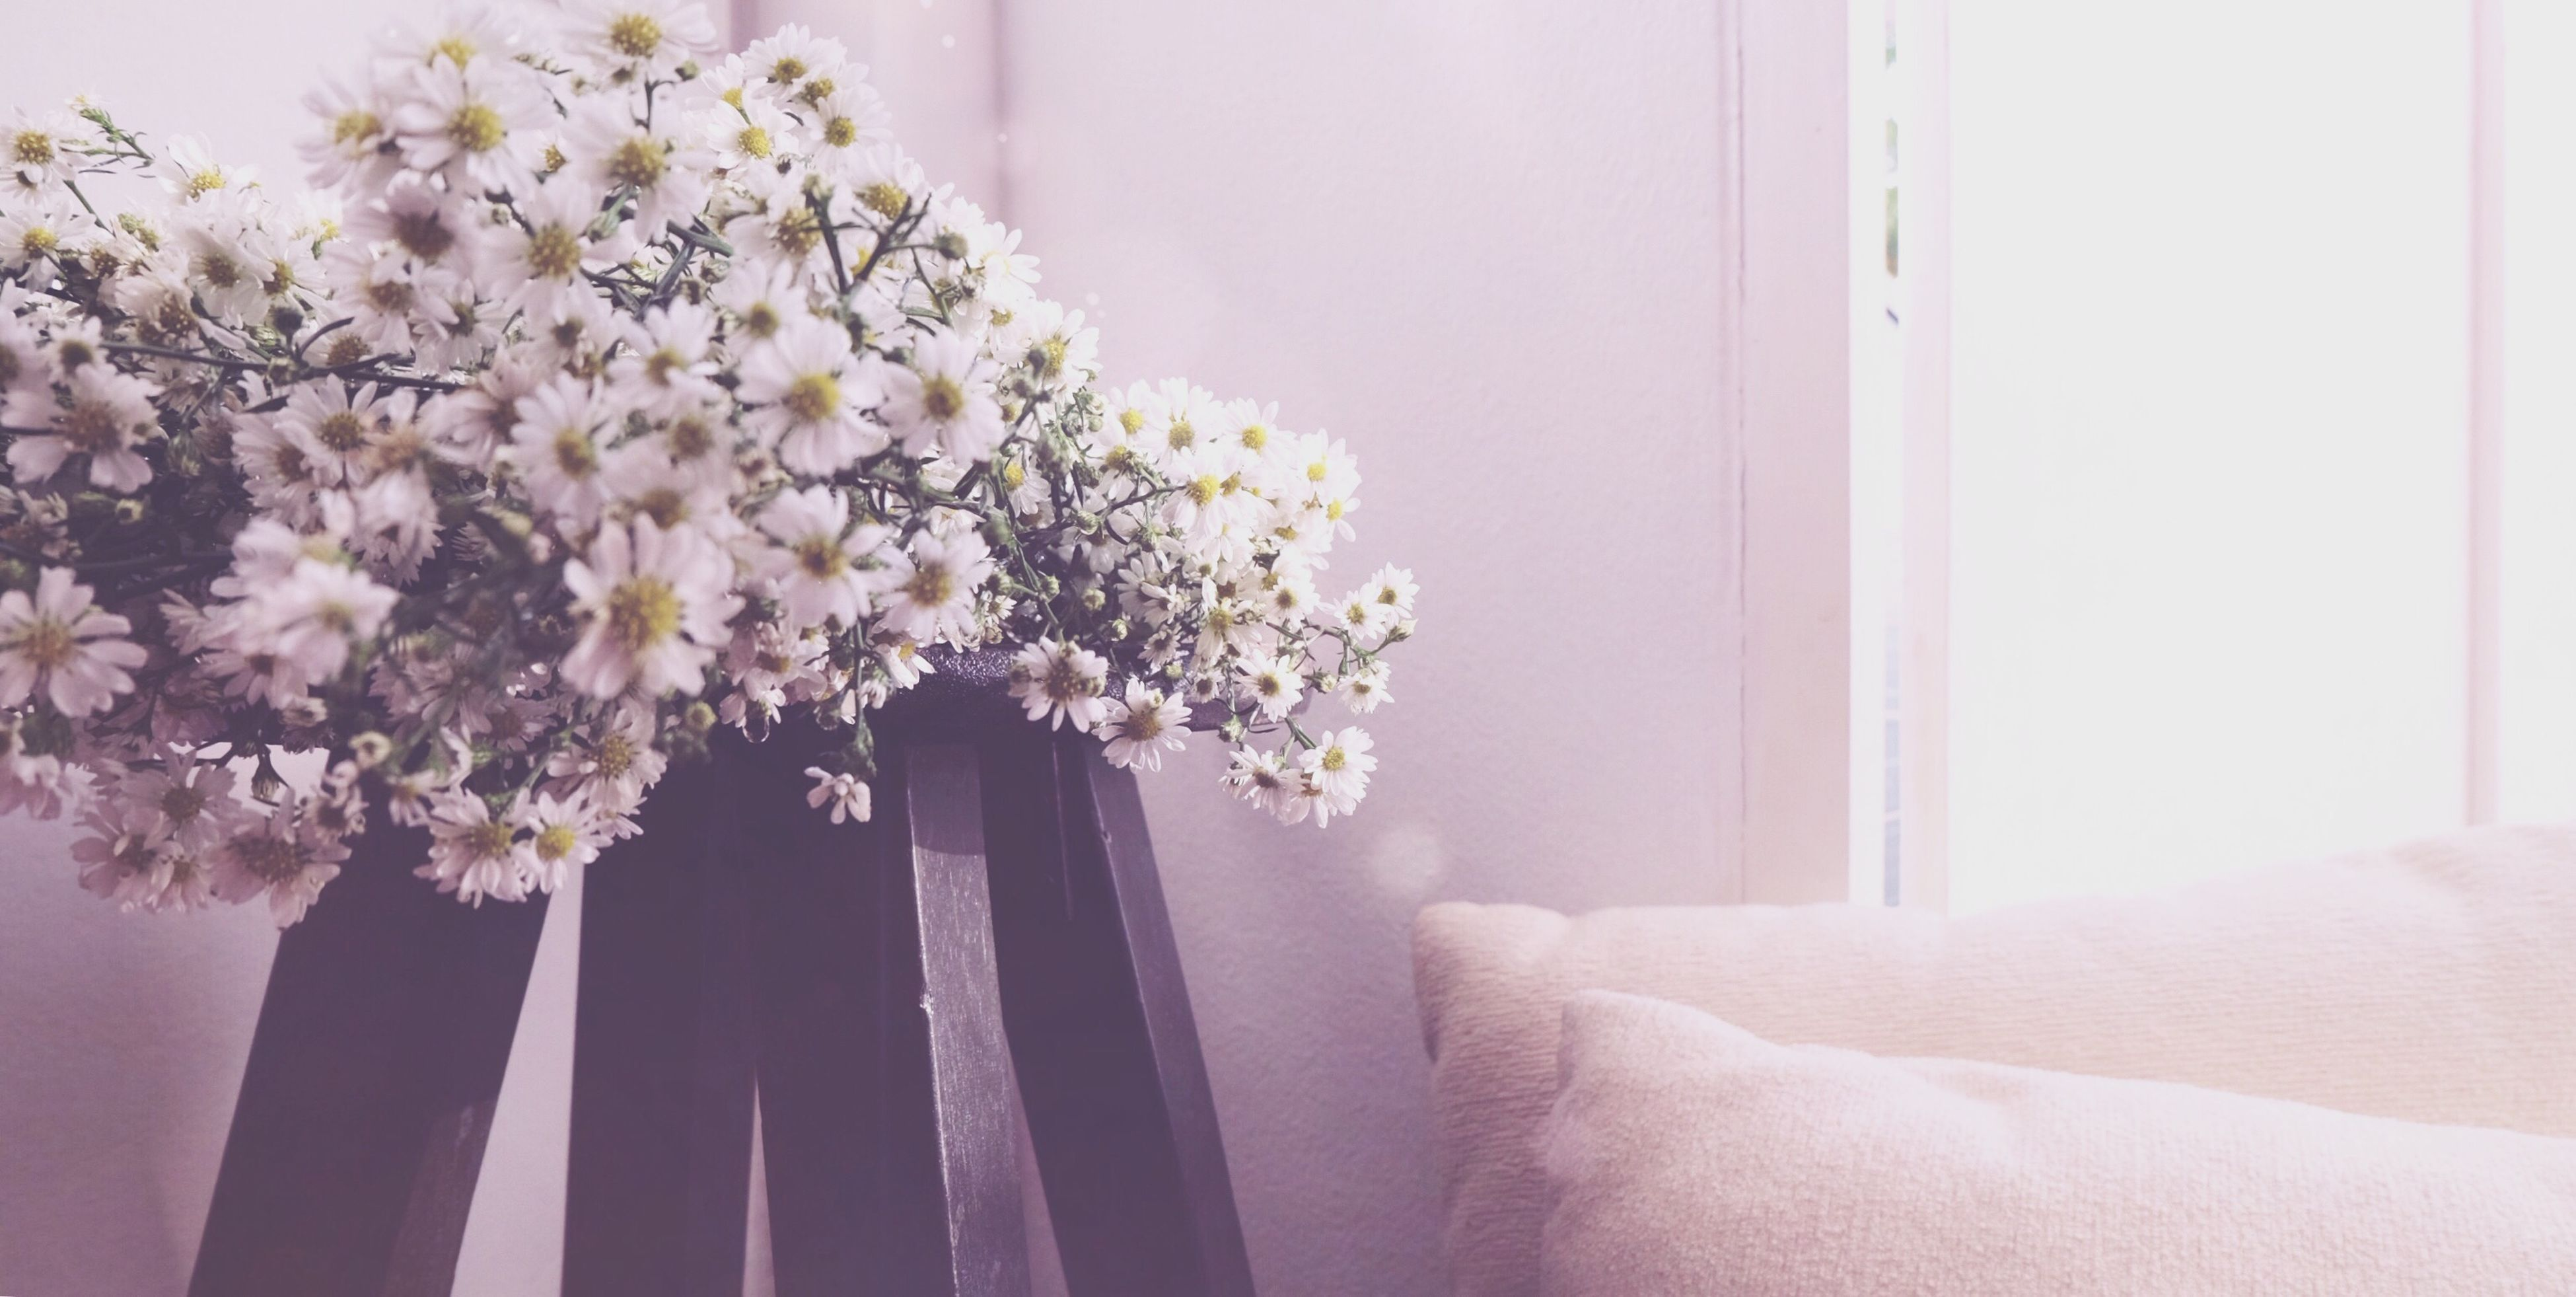 flower, fragility, freshness, indoors, petal, flower head, vase, beauty in nature, person, white color, growth, nature, part of, blossom, blooming, holding, plant, cropped